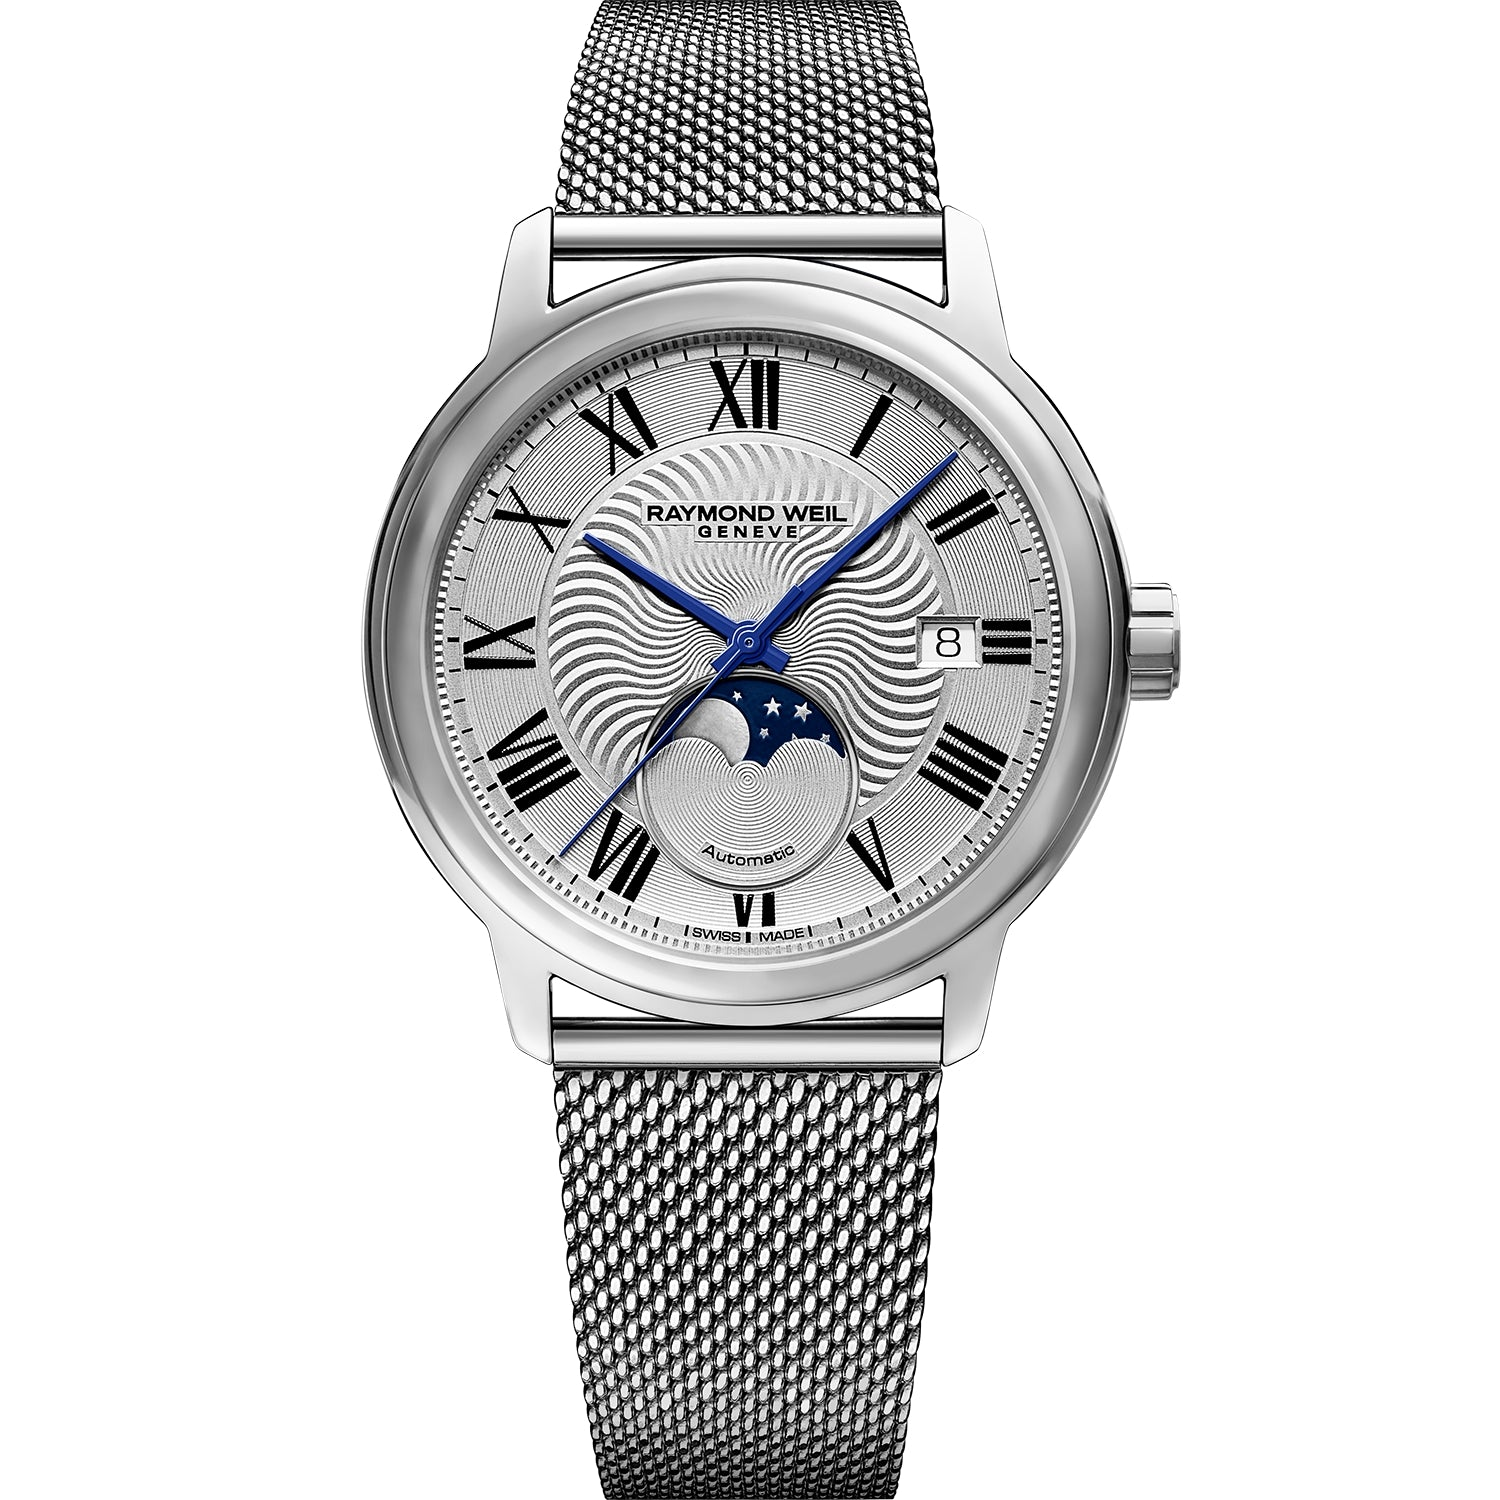 Maestro Moon Phase Men's Automatic Silver Mesh Steel Watch 2239M-ST-00659